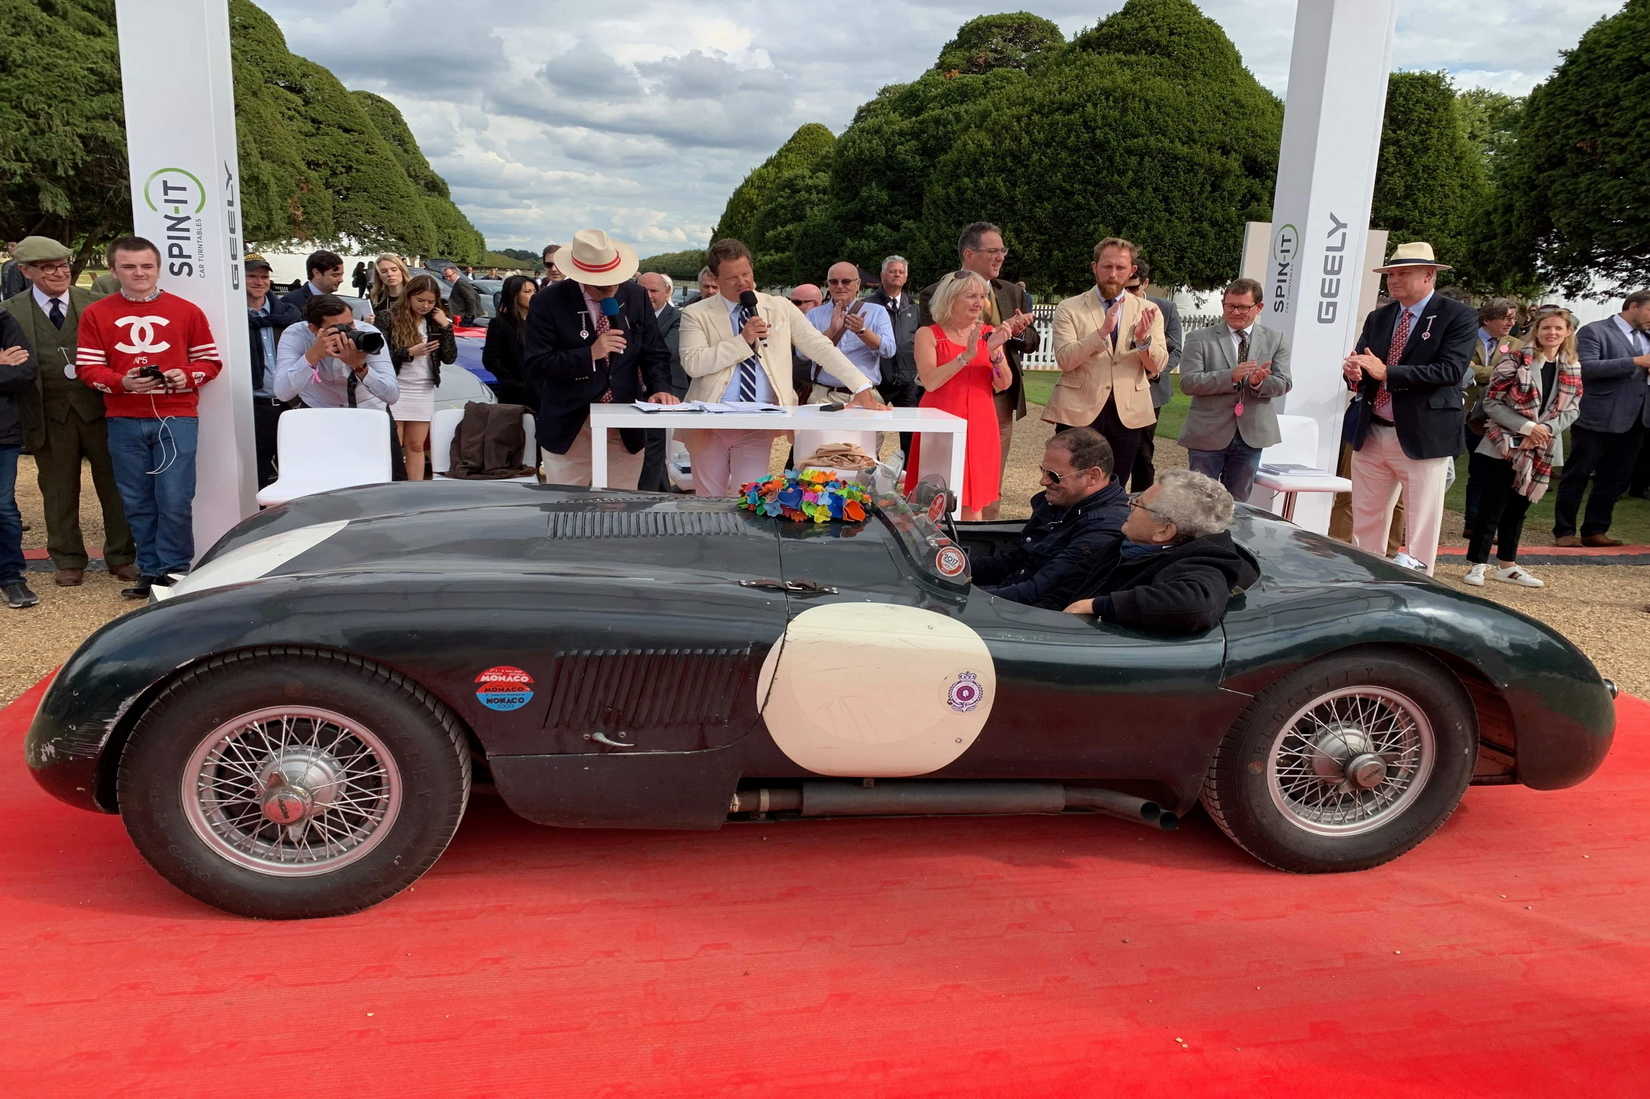 Jaguar C-Type surrounded by a crowd of people at the Concours Stage